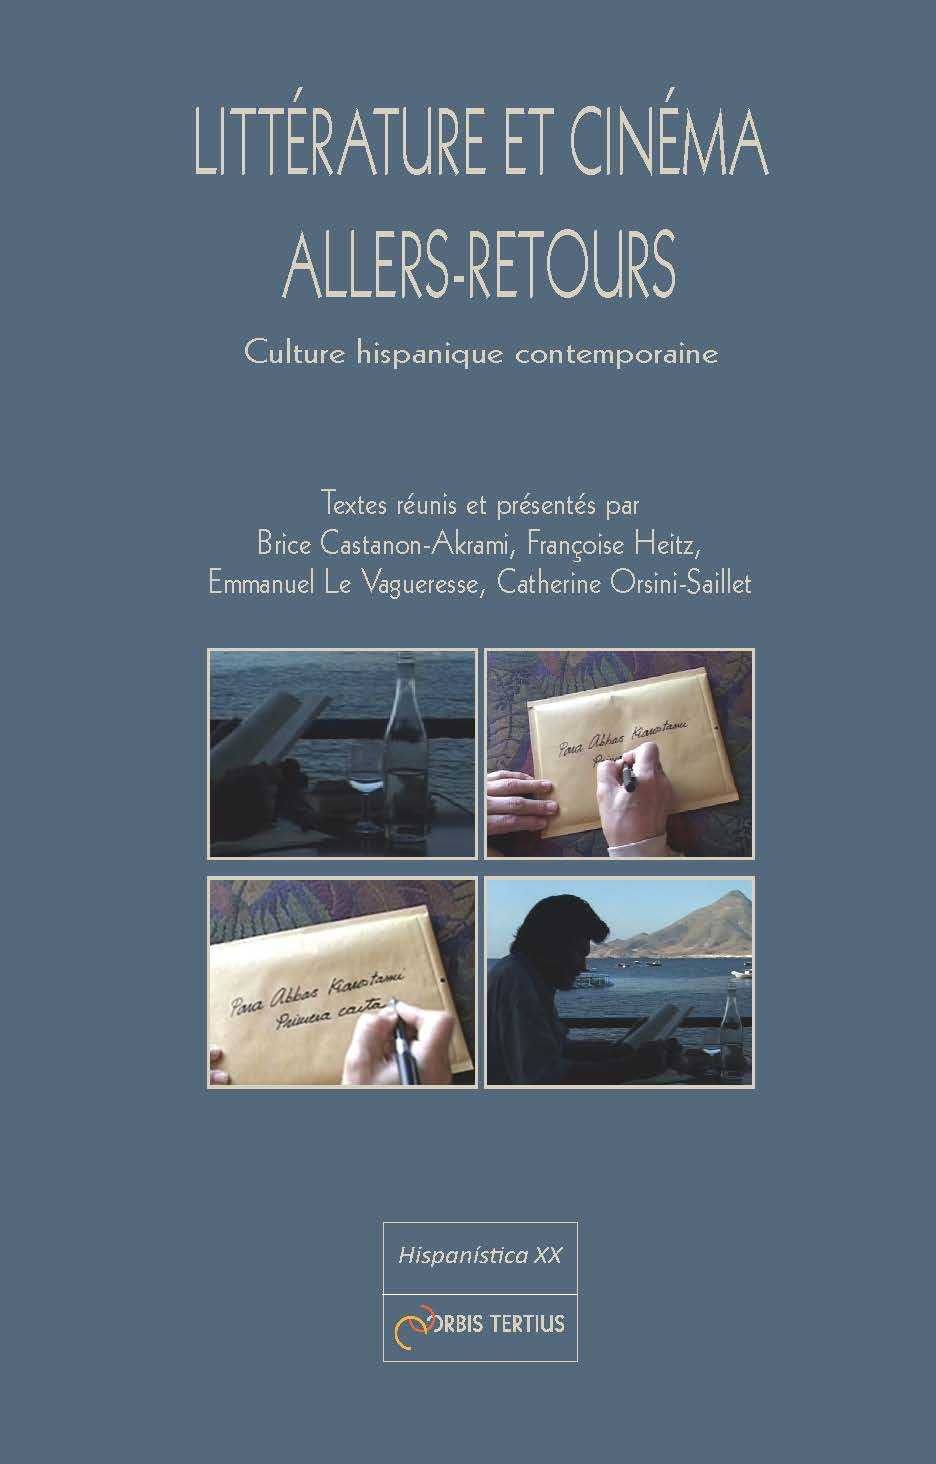 LITTERATURE ET CINEMA : ALLERS-RETOURS.